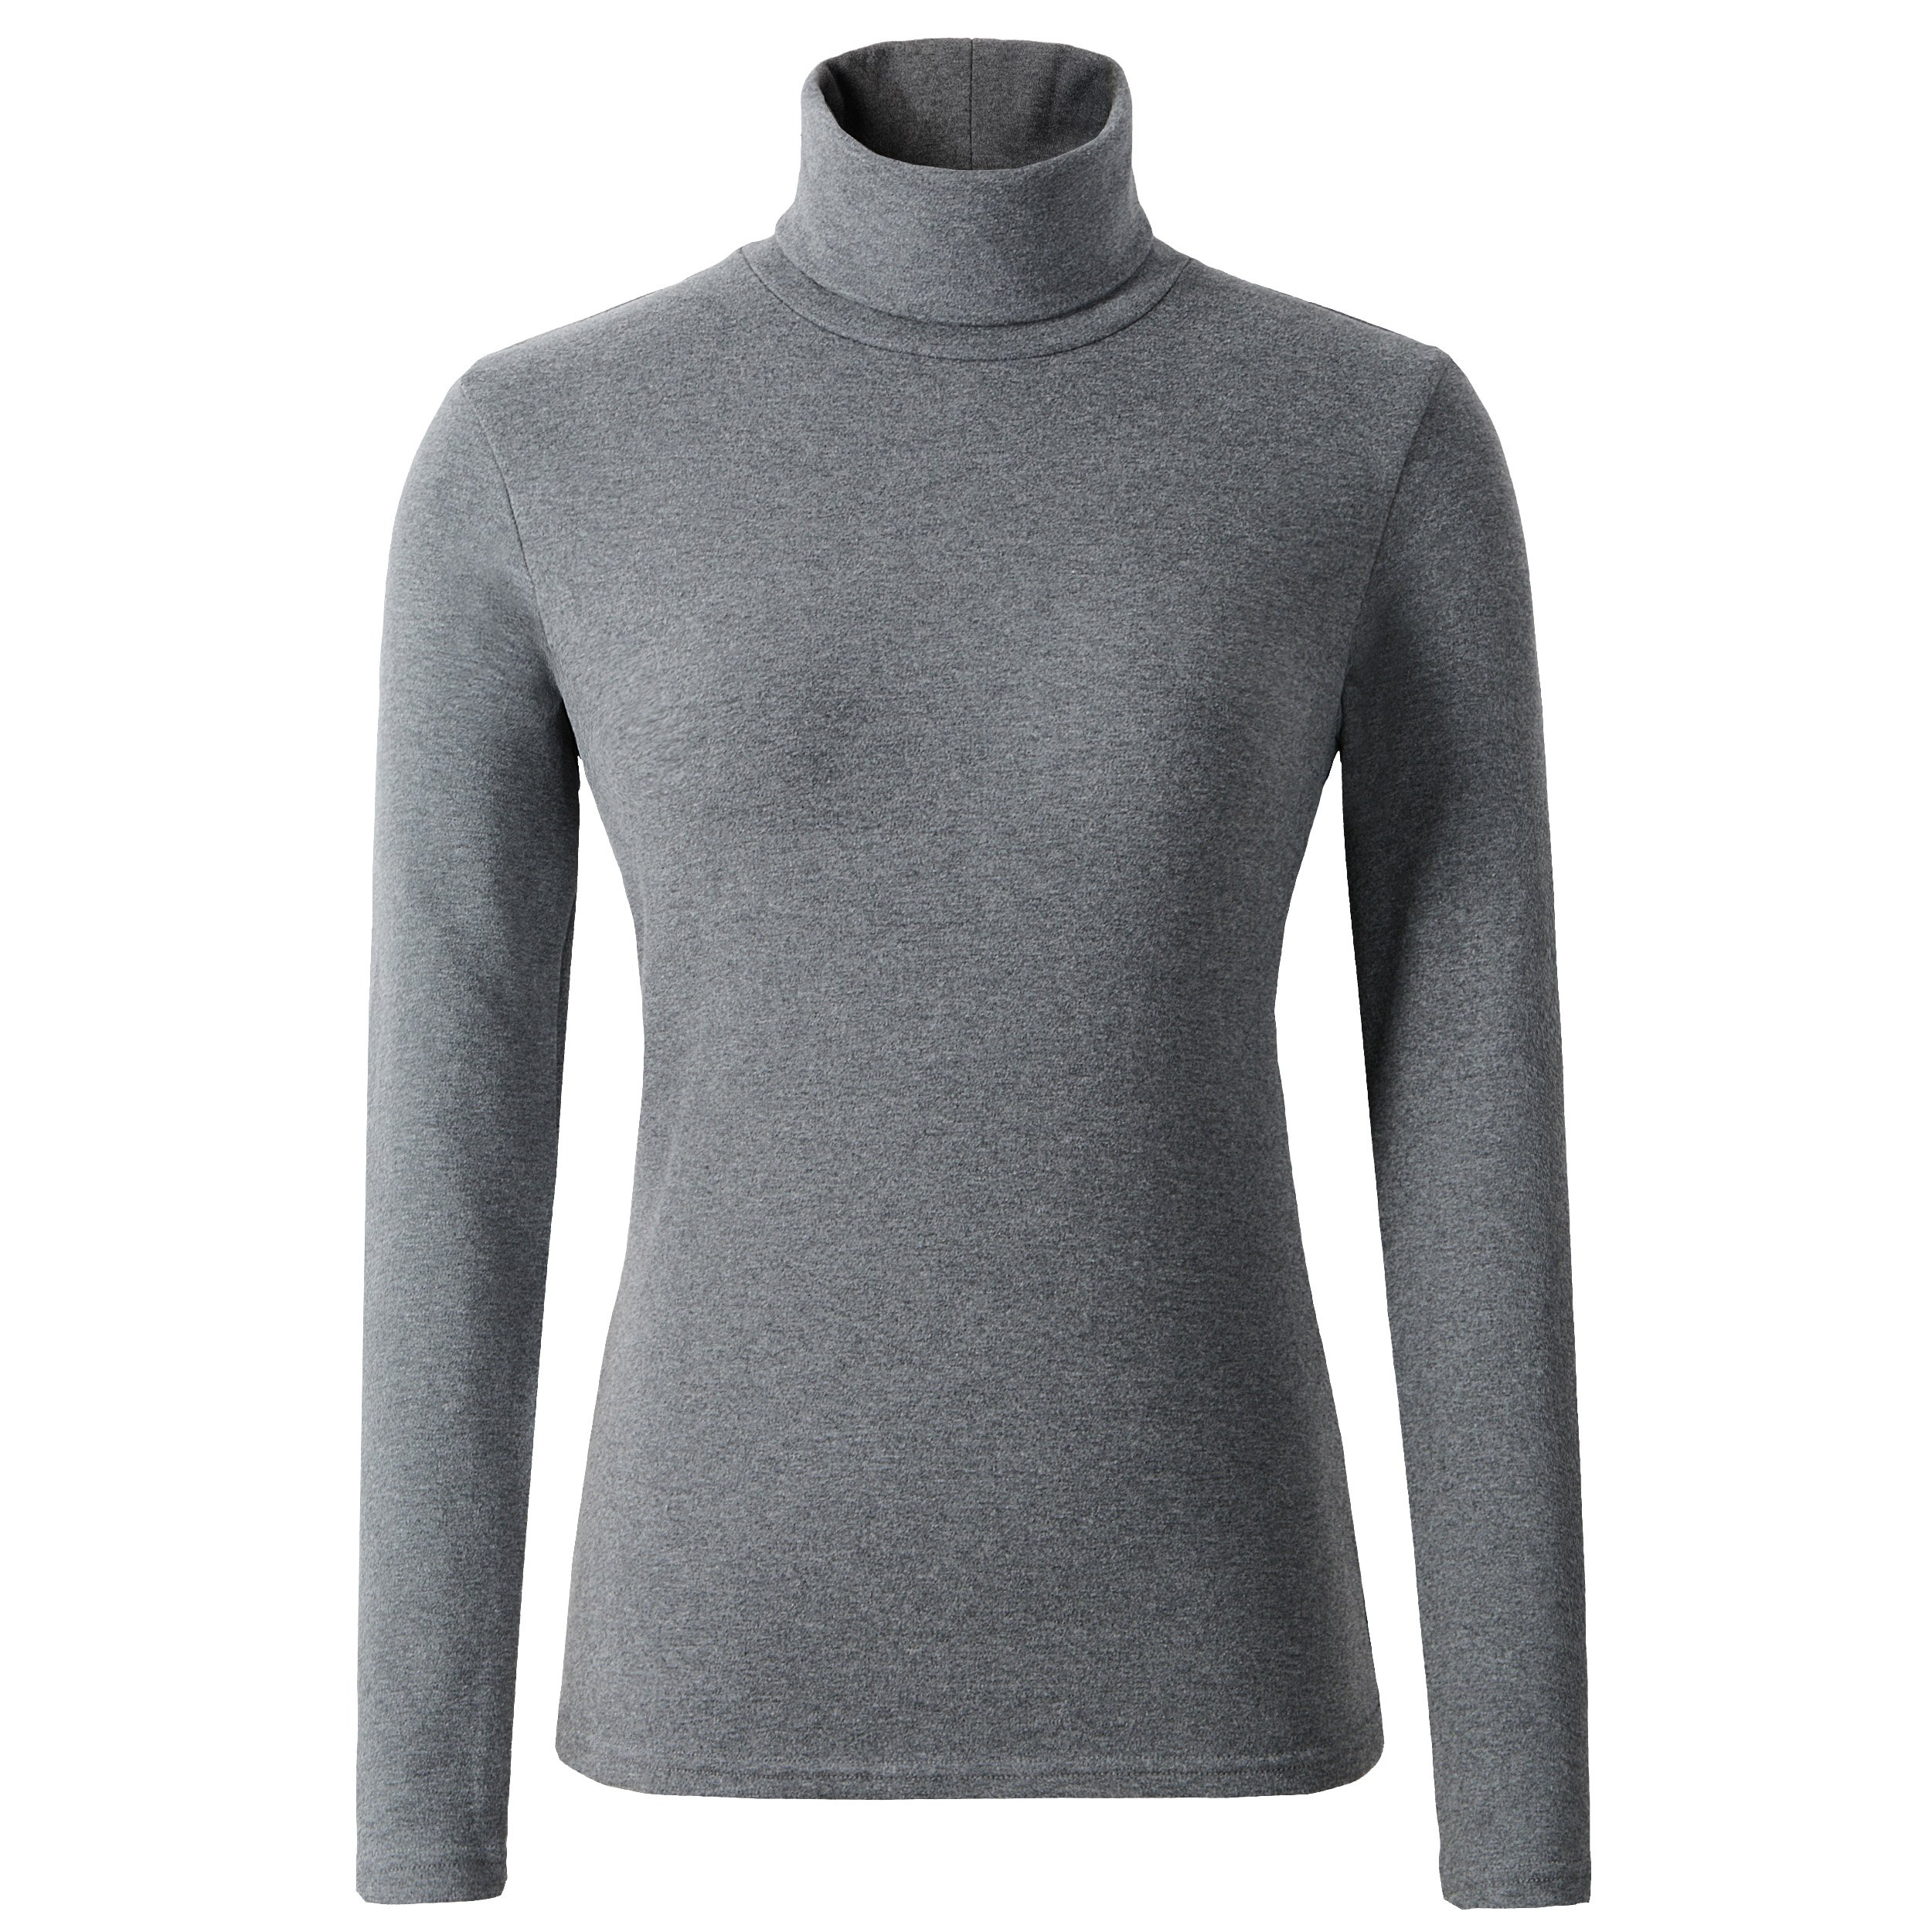 HieasyFit Women's Soft Cotton Turtleneck Top Basic Layer Darkgray XL by HieasyFit